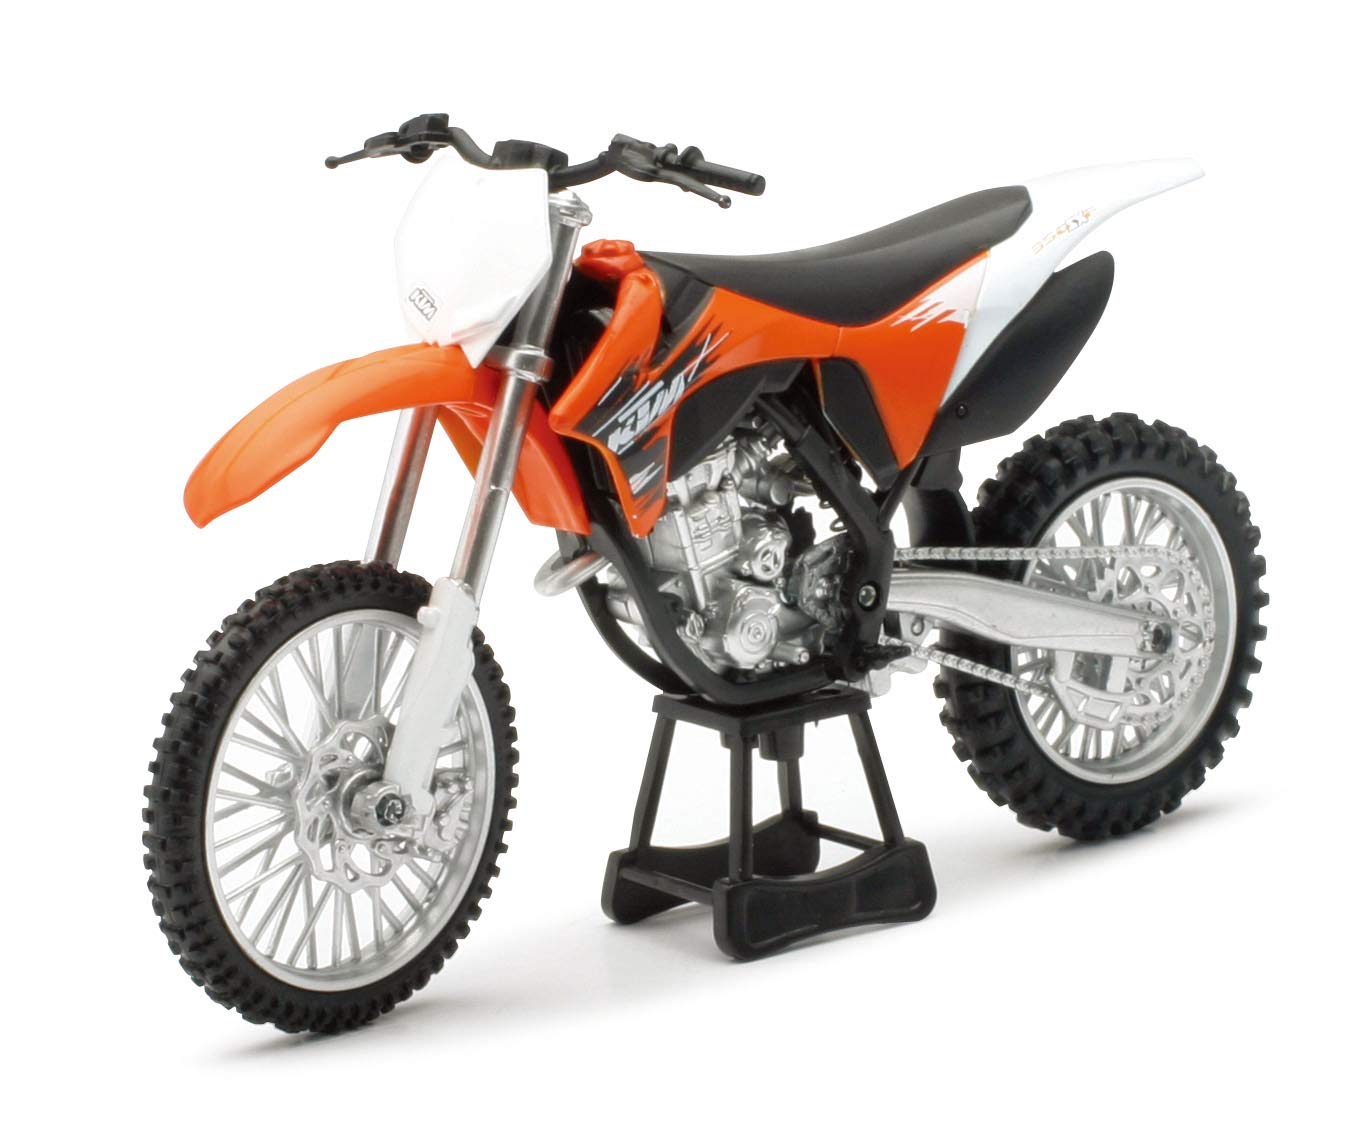 New-Ray 1:12 scale KTM 350SX-F die cast dirt bike model